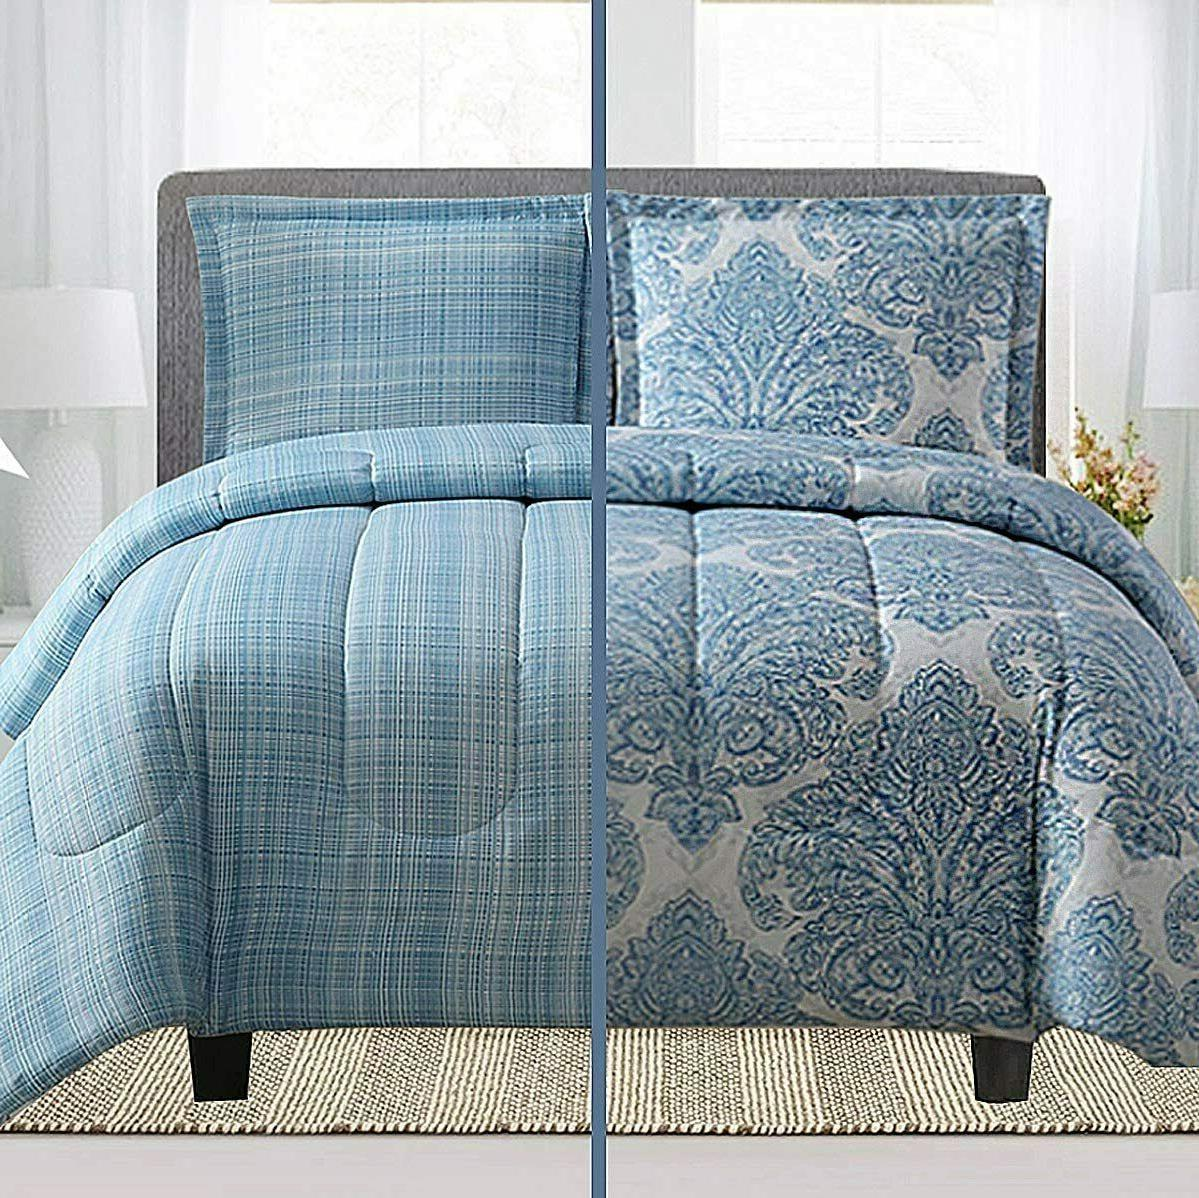 3 Piece Duvet Cover Set Egyptian Comfort 1800 Bedding Microf